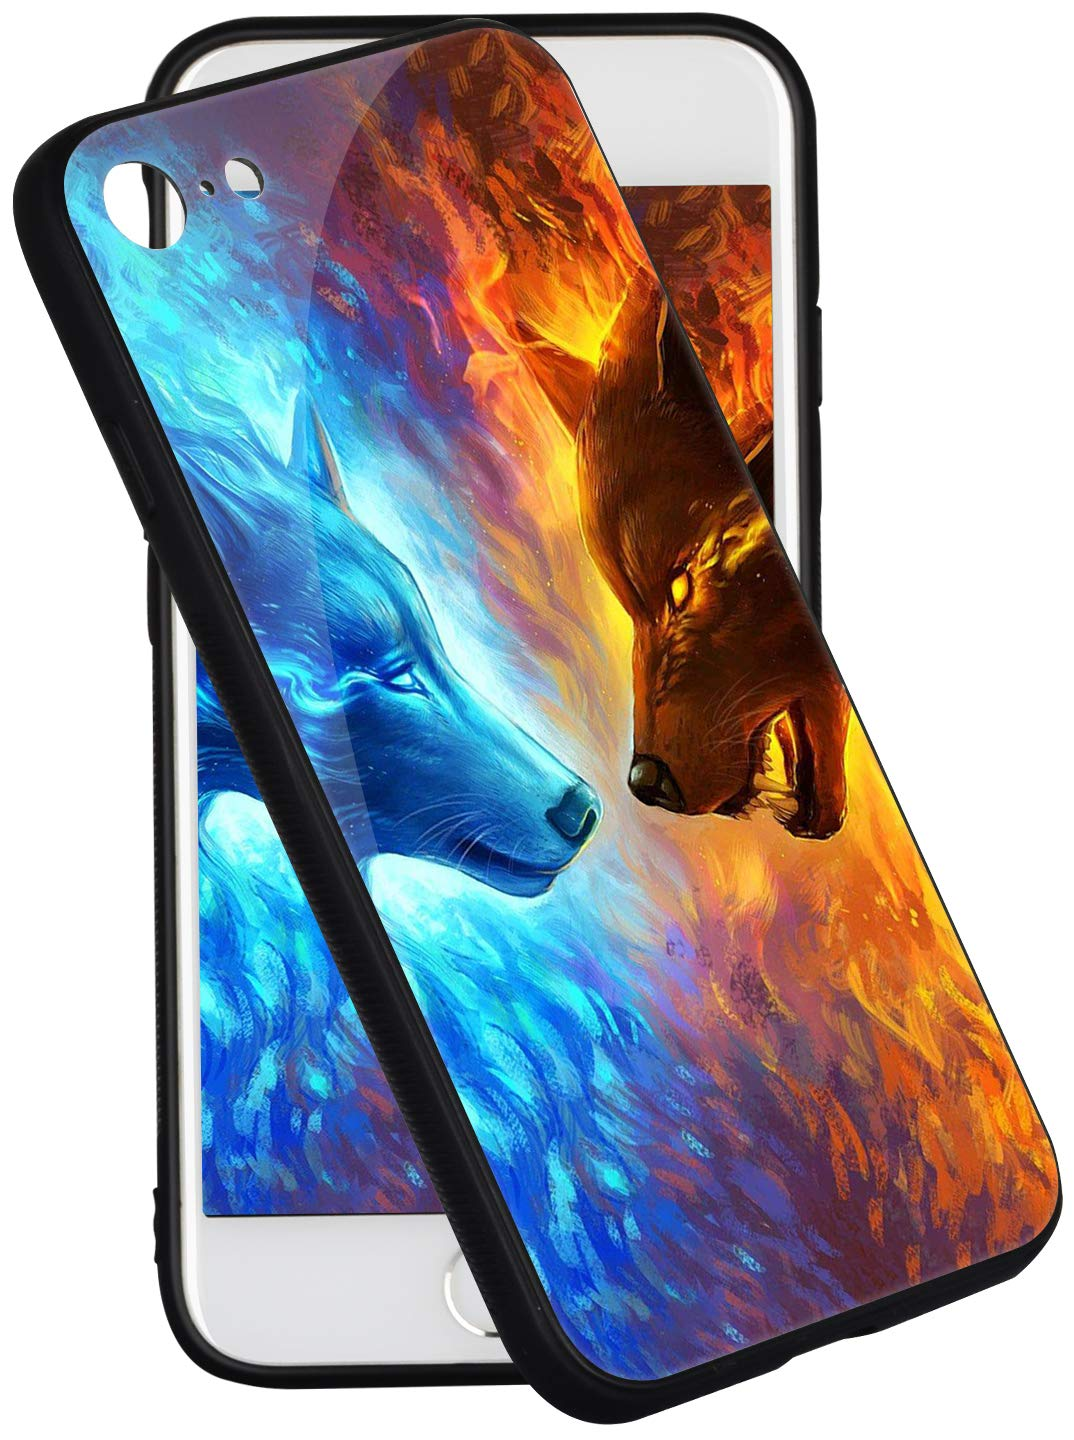 iPhone 8 Case iPhone 7 Case Pricetail Anti-Drop TPU Bumper Hard PC Scratch-Proof Tempered Glass Protector Cover Fit iPhone 8 Cases iPhone 7 Cases for Girls Boys Ice Wolf VS Fire Wolf